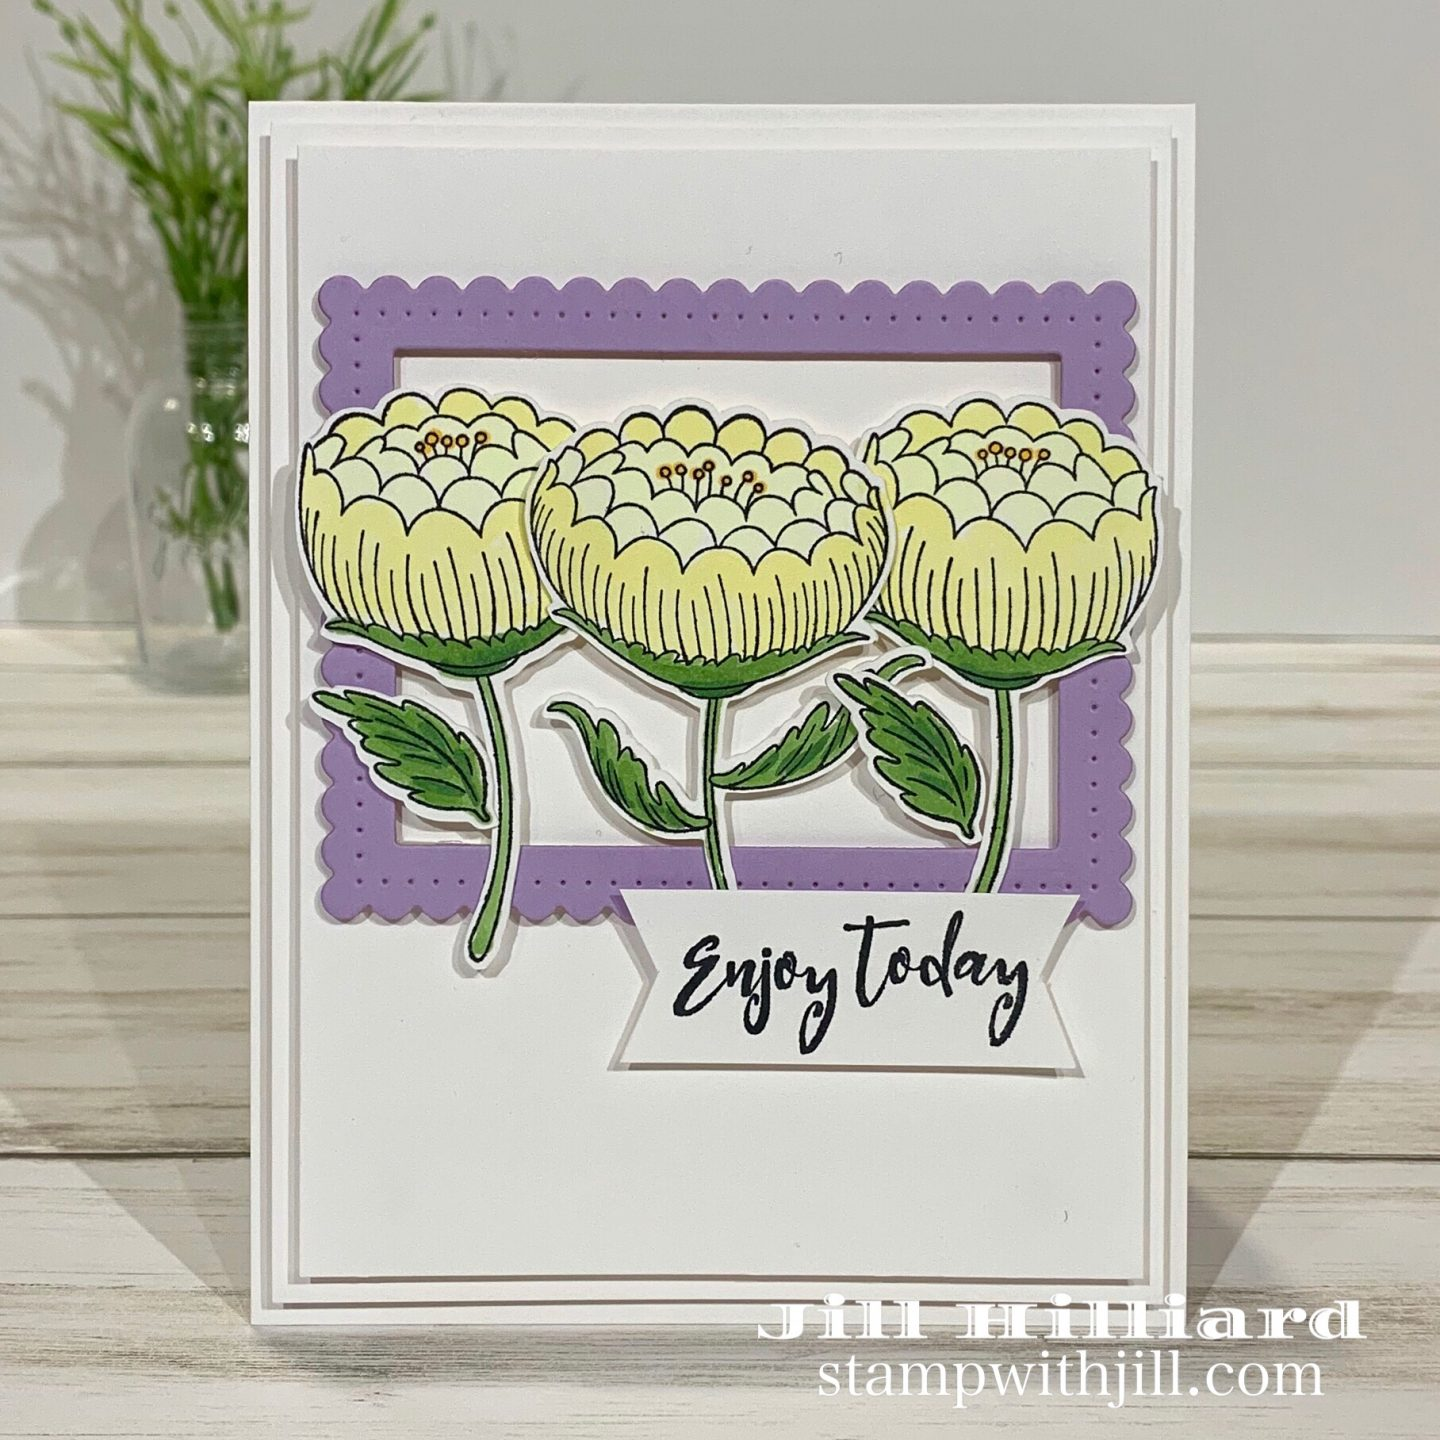 Stamp with Jill, Spellbinders + FSJ  stamp of the month